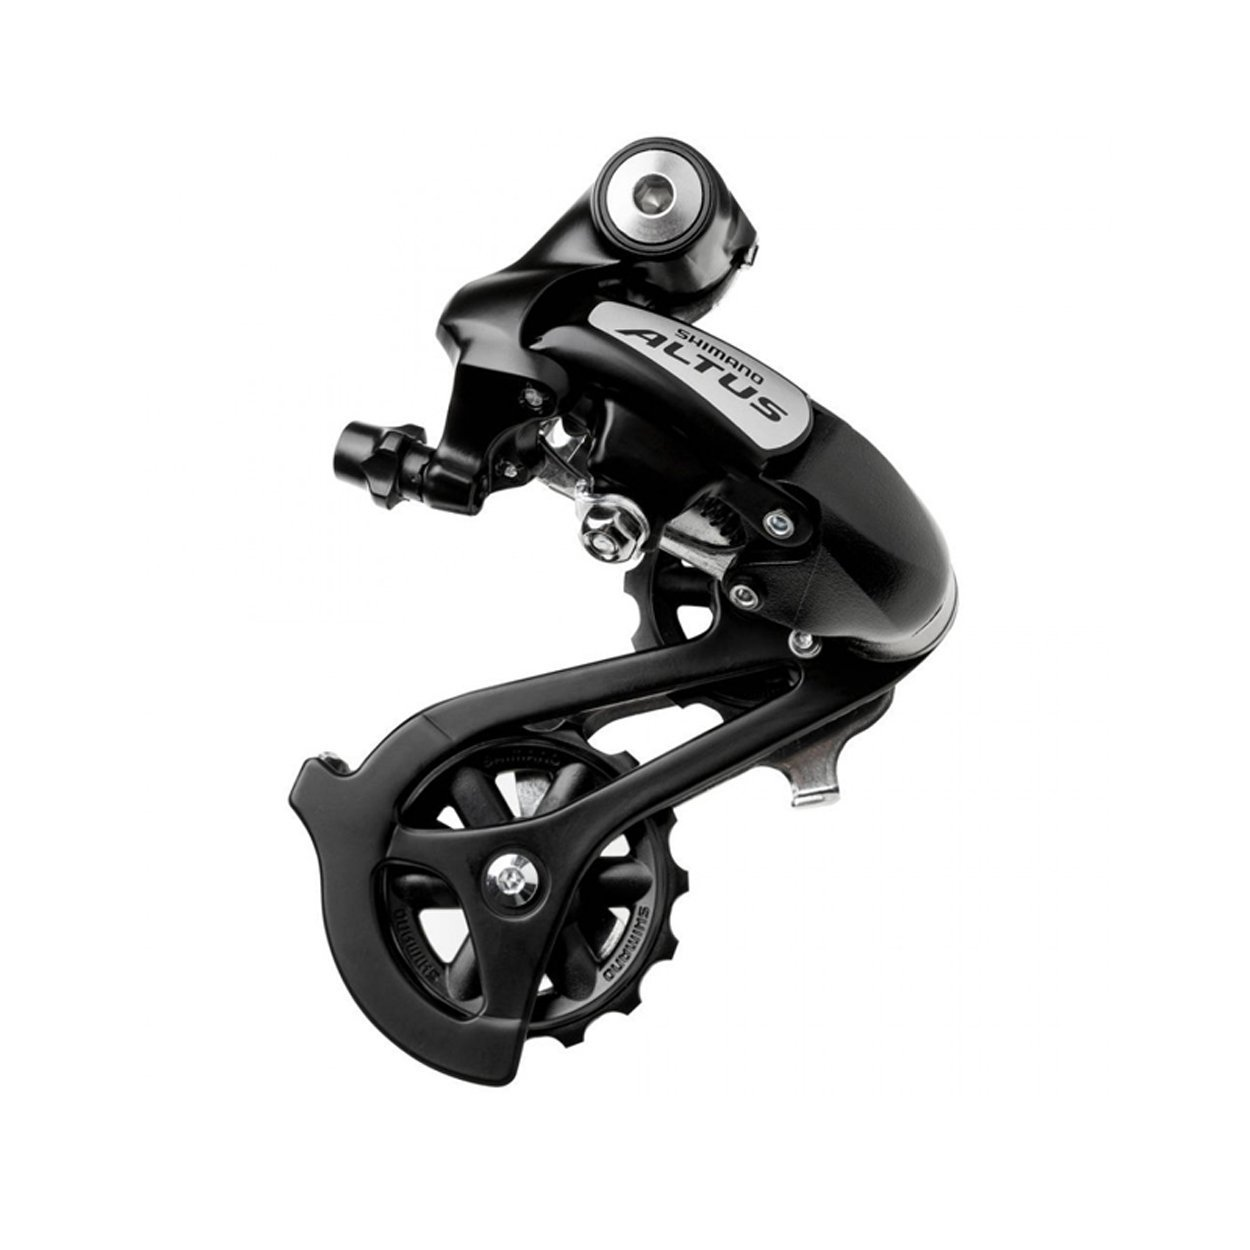 b31adb95a84 Buy Shimano Tourney Original RD-TY300 6/7Speed Rear Derailleur SIS Direct  Mount in Cheap Price on m.alibaba.com